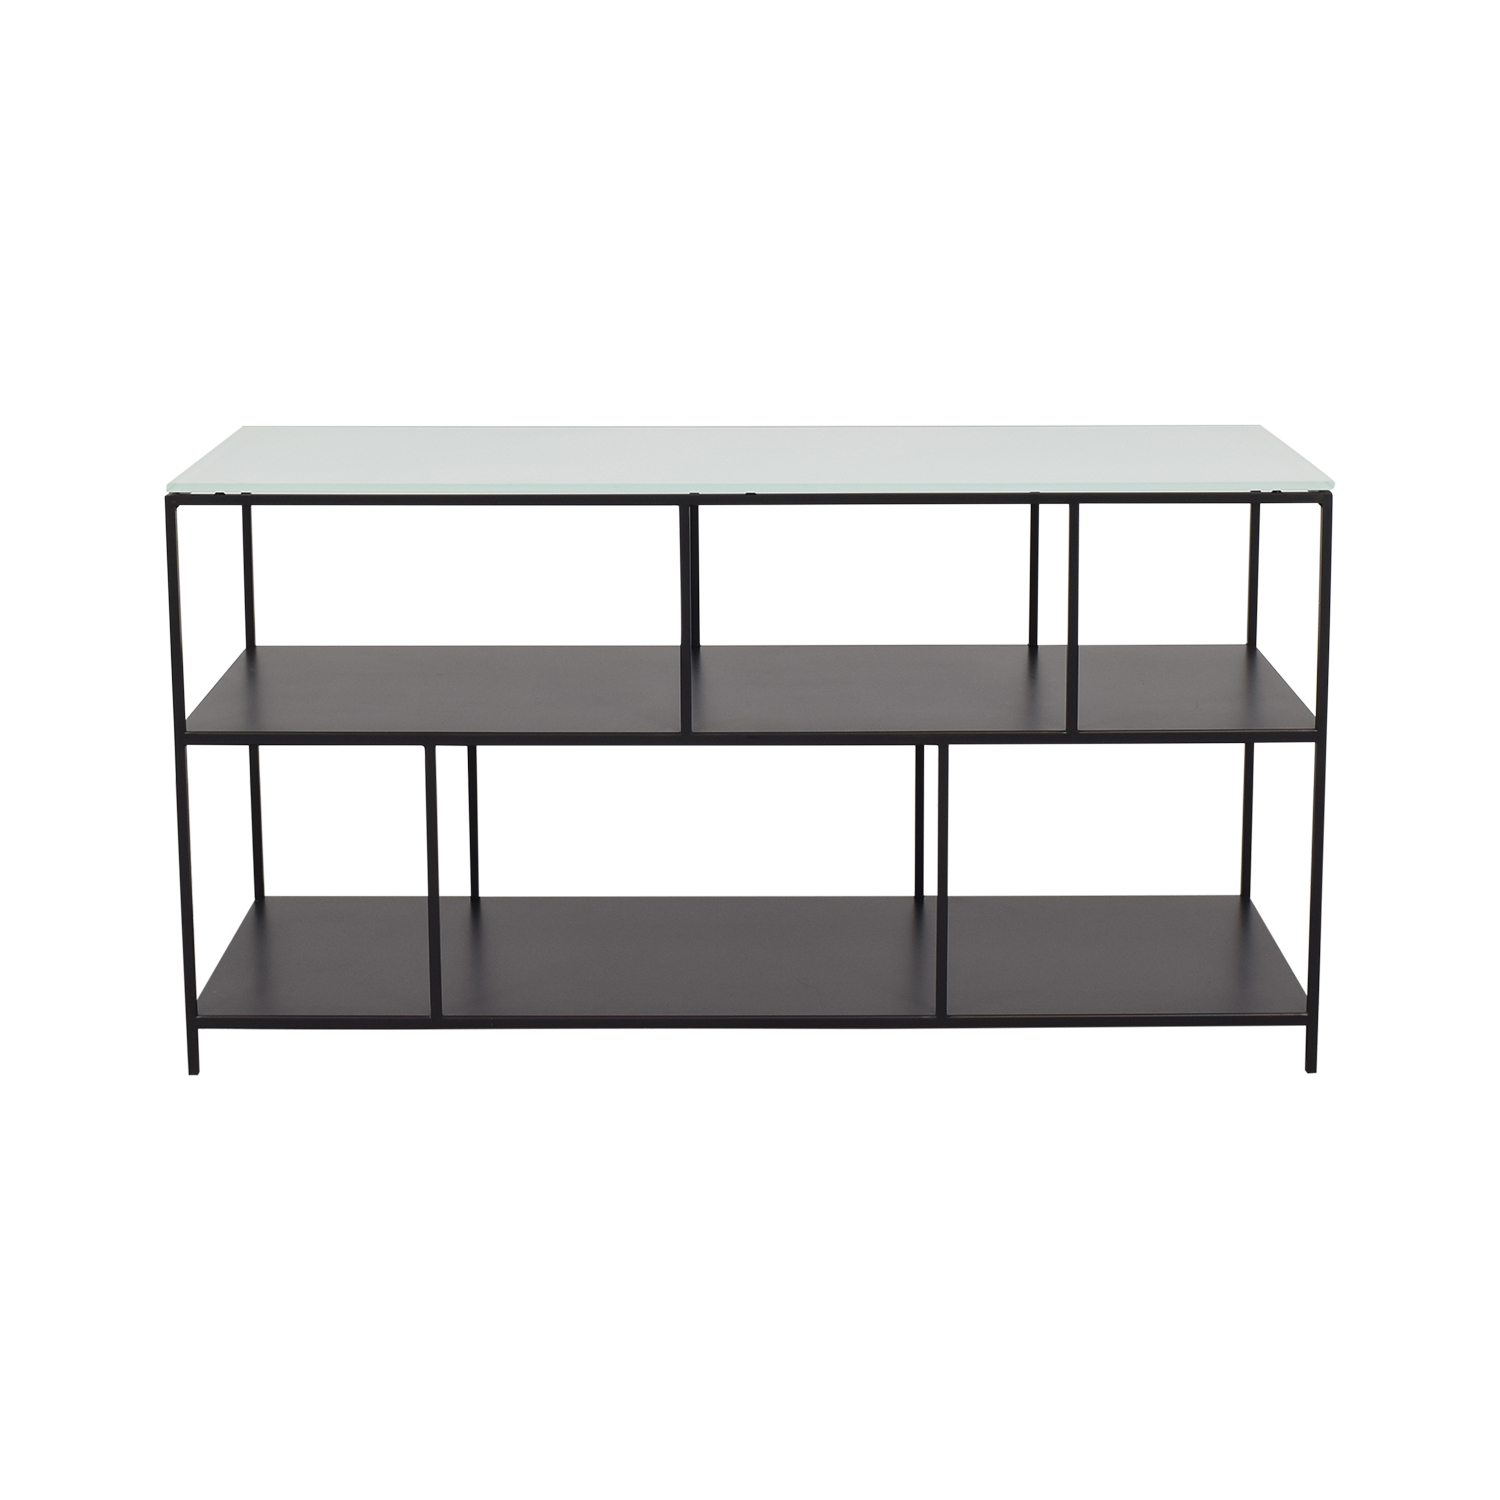 Excellent 53 Off Room Board Room Board Bowen Console Table Storage Pdpeps Interior Chair Design Pdpepsorg